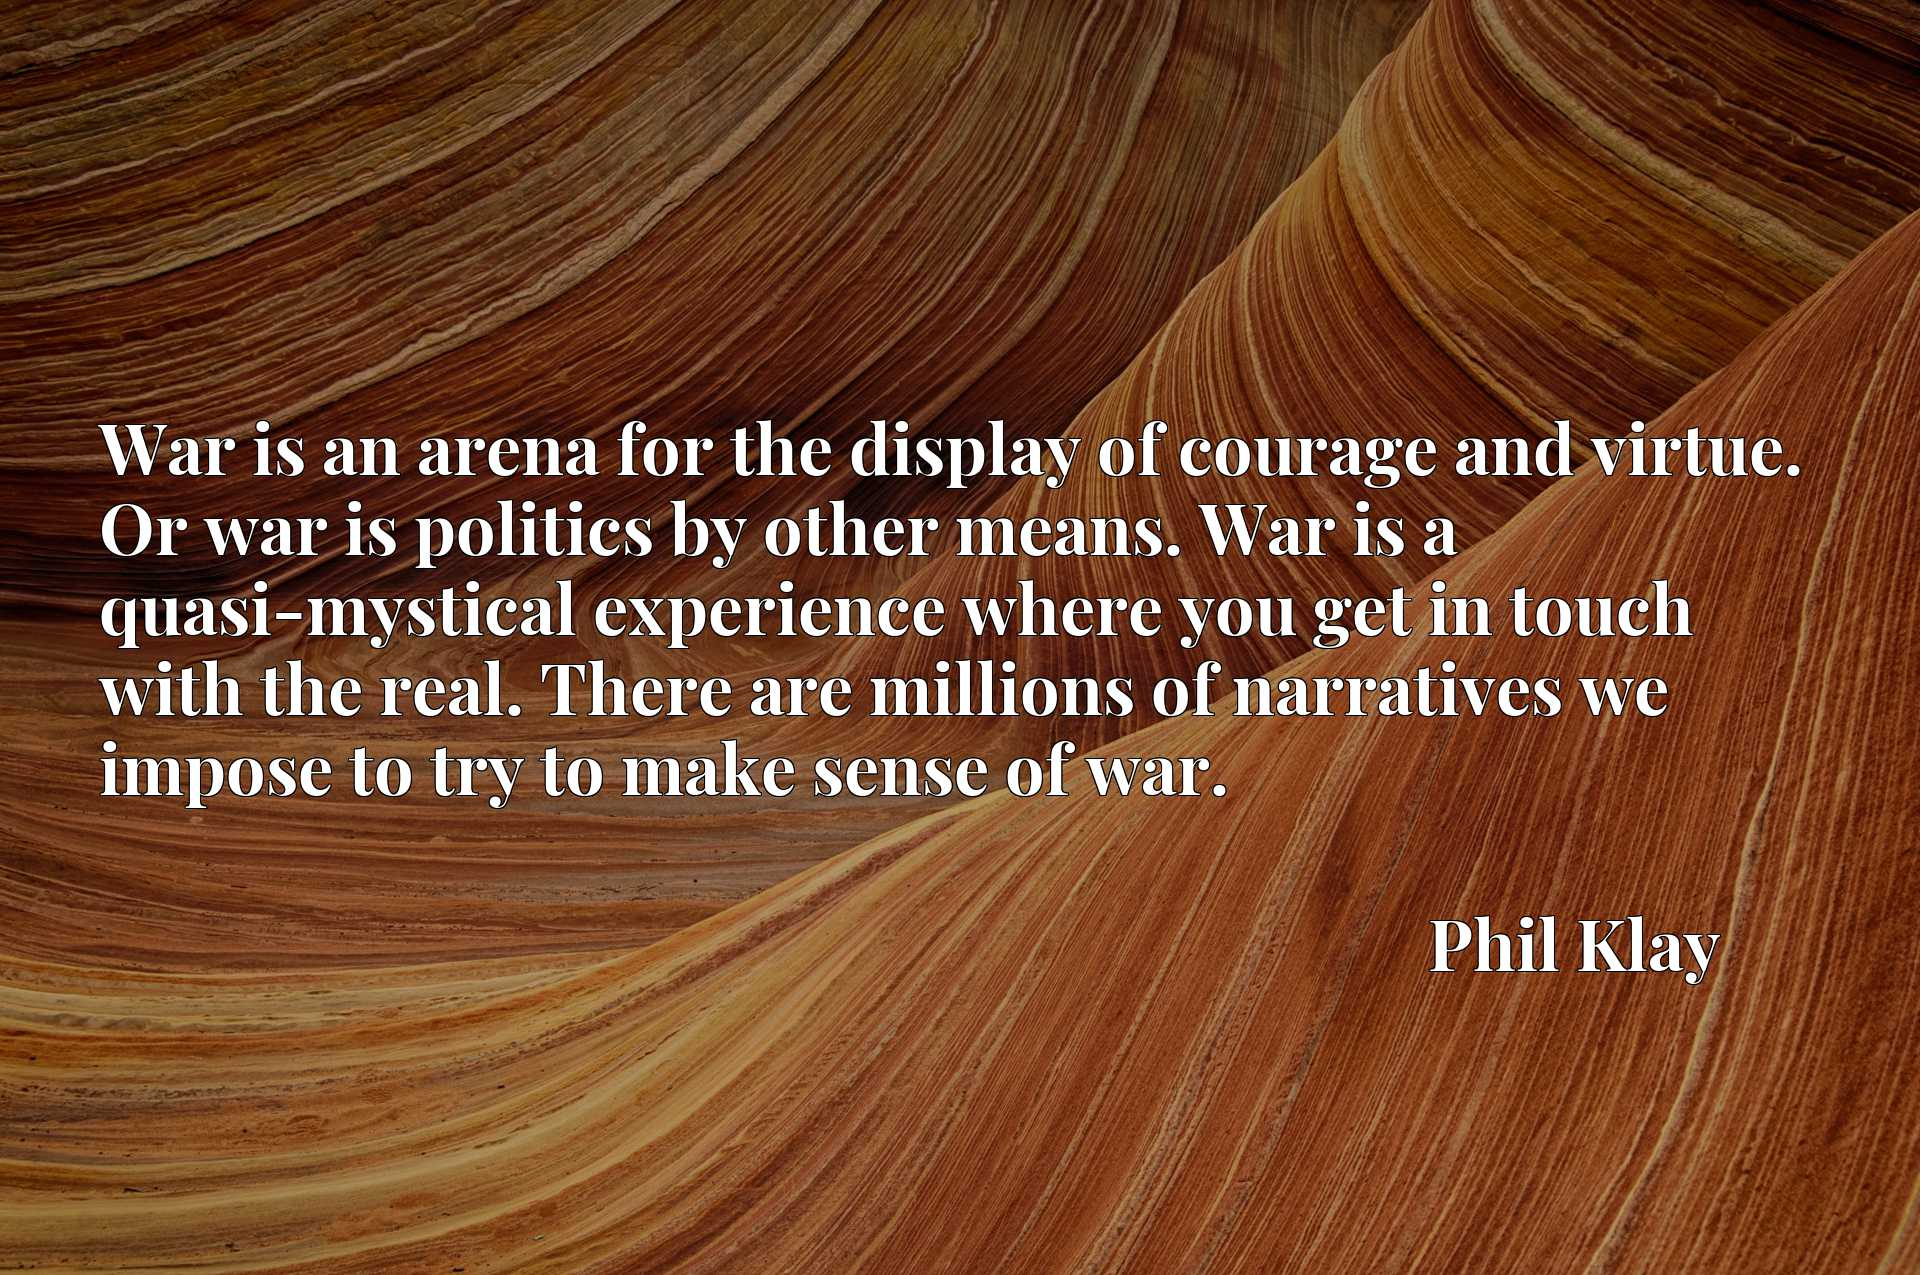 War is an arena for the display of courage and virtue. Or war is politics by other means. War is a quasi-mystical experience where you get in touch with the real. There are millions of narratives we impose to try to make sense of war.